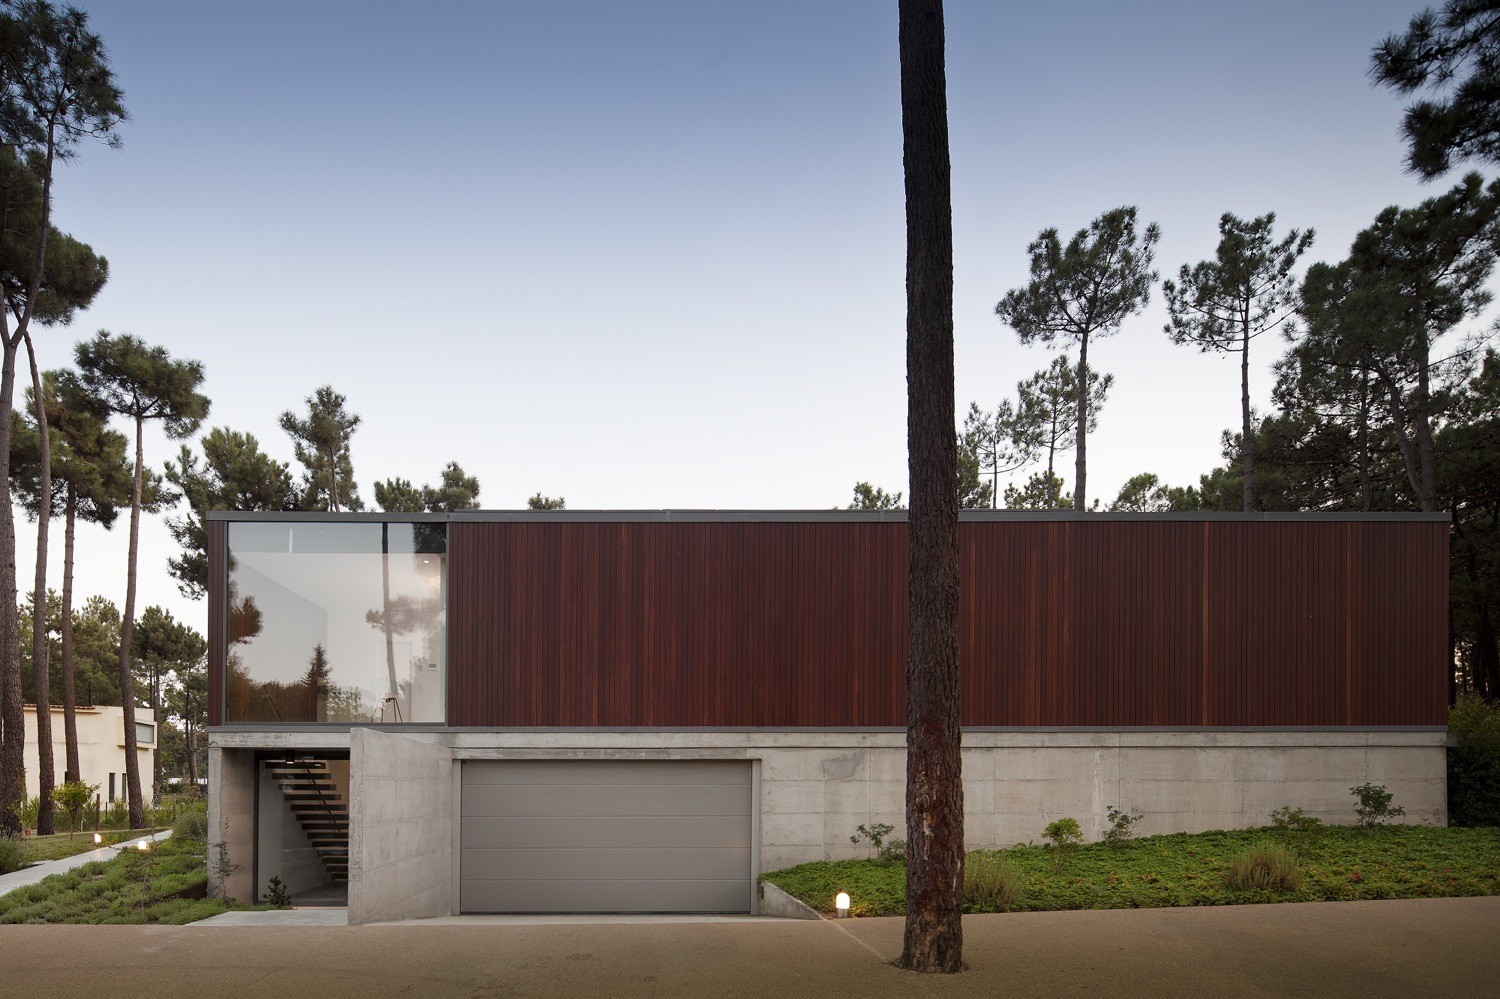 Aroeira III House / ColectivArquitectura, © FG+SG - architectural photography